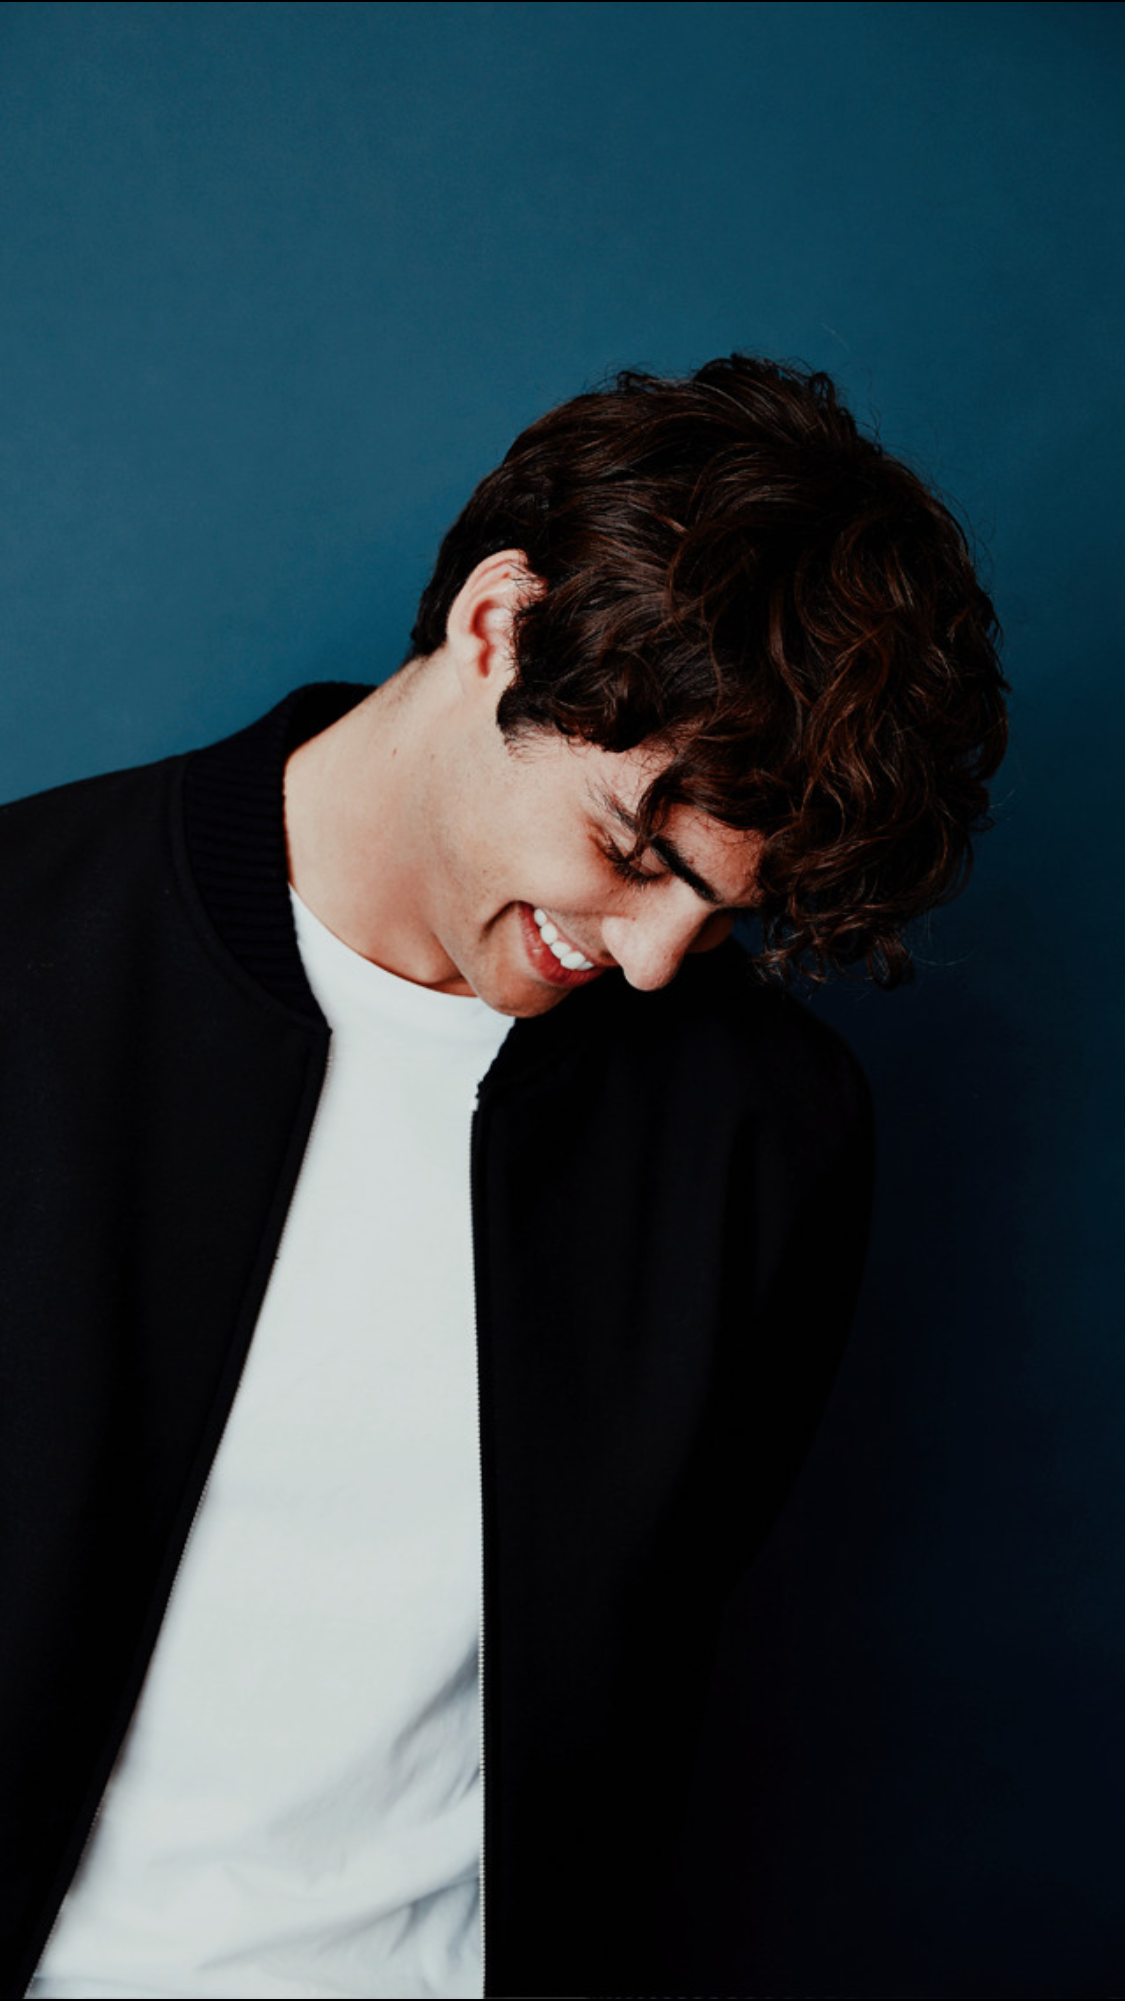 Pin By Rocío Maradiaga On Noah Centineo Celebrities Cute Guys People